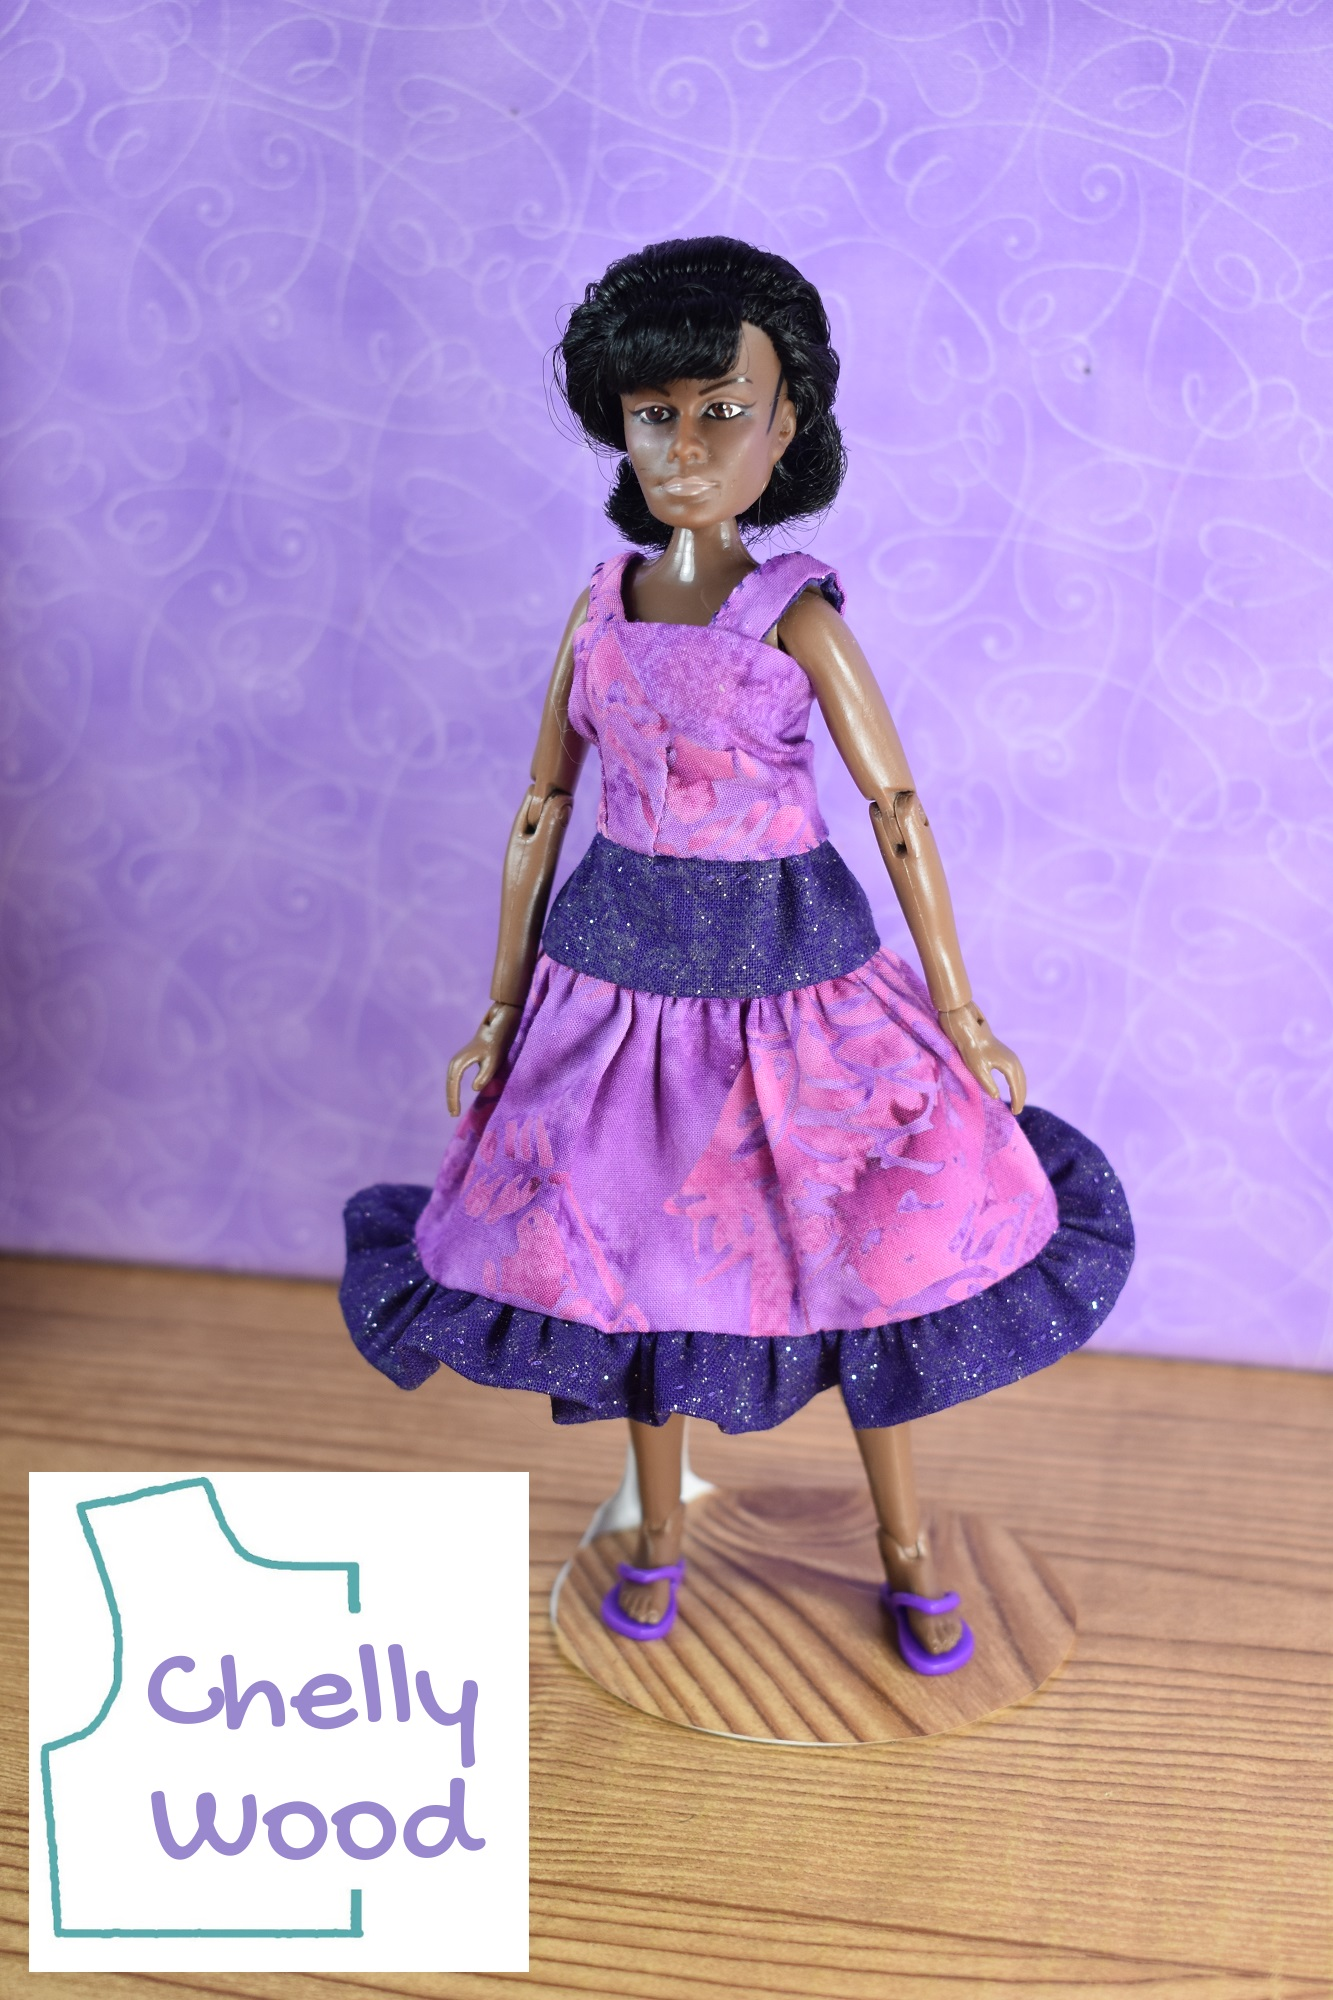 In this photograph, we see the Lieutenant Uhura action figure from Mego dressed in handmade doll clothes that include a reversible tank top (pink on one side and purple on the other side) and a three tier skirt layered in first purple glittery cotton then pink batik cotton then a purple glittery cotton ruffle. The doll's hair is perfectly styled (like the real Nichelle Nichols) and she wears tiny purple plastic flip flop shoes.